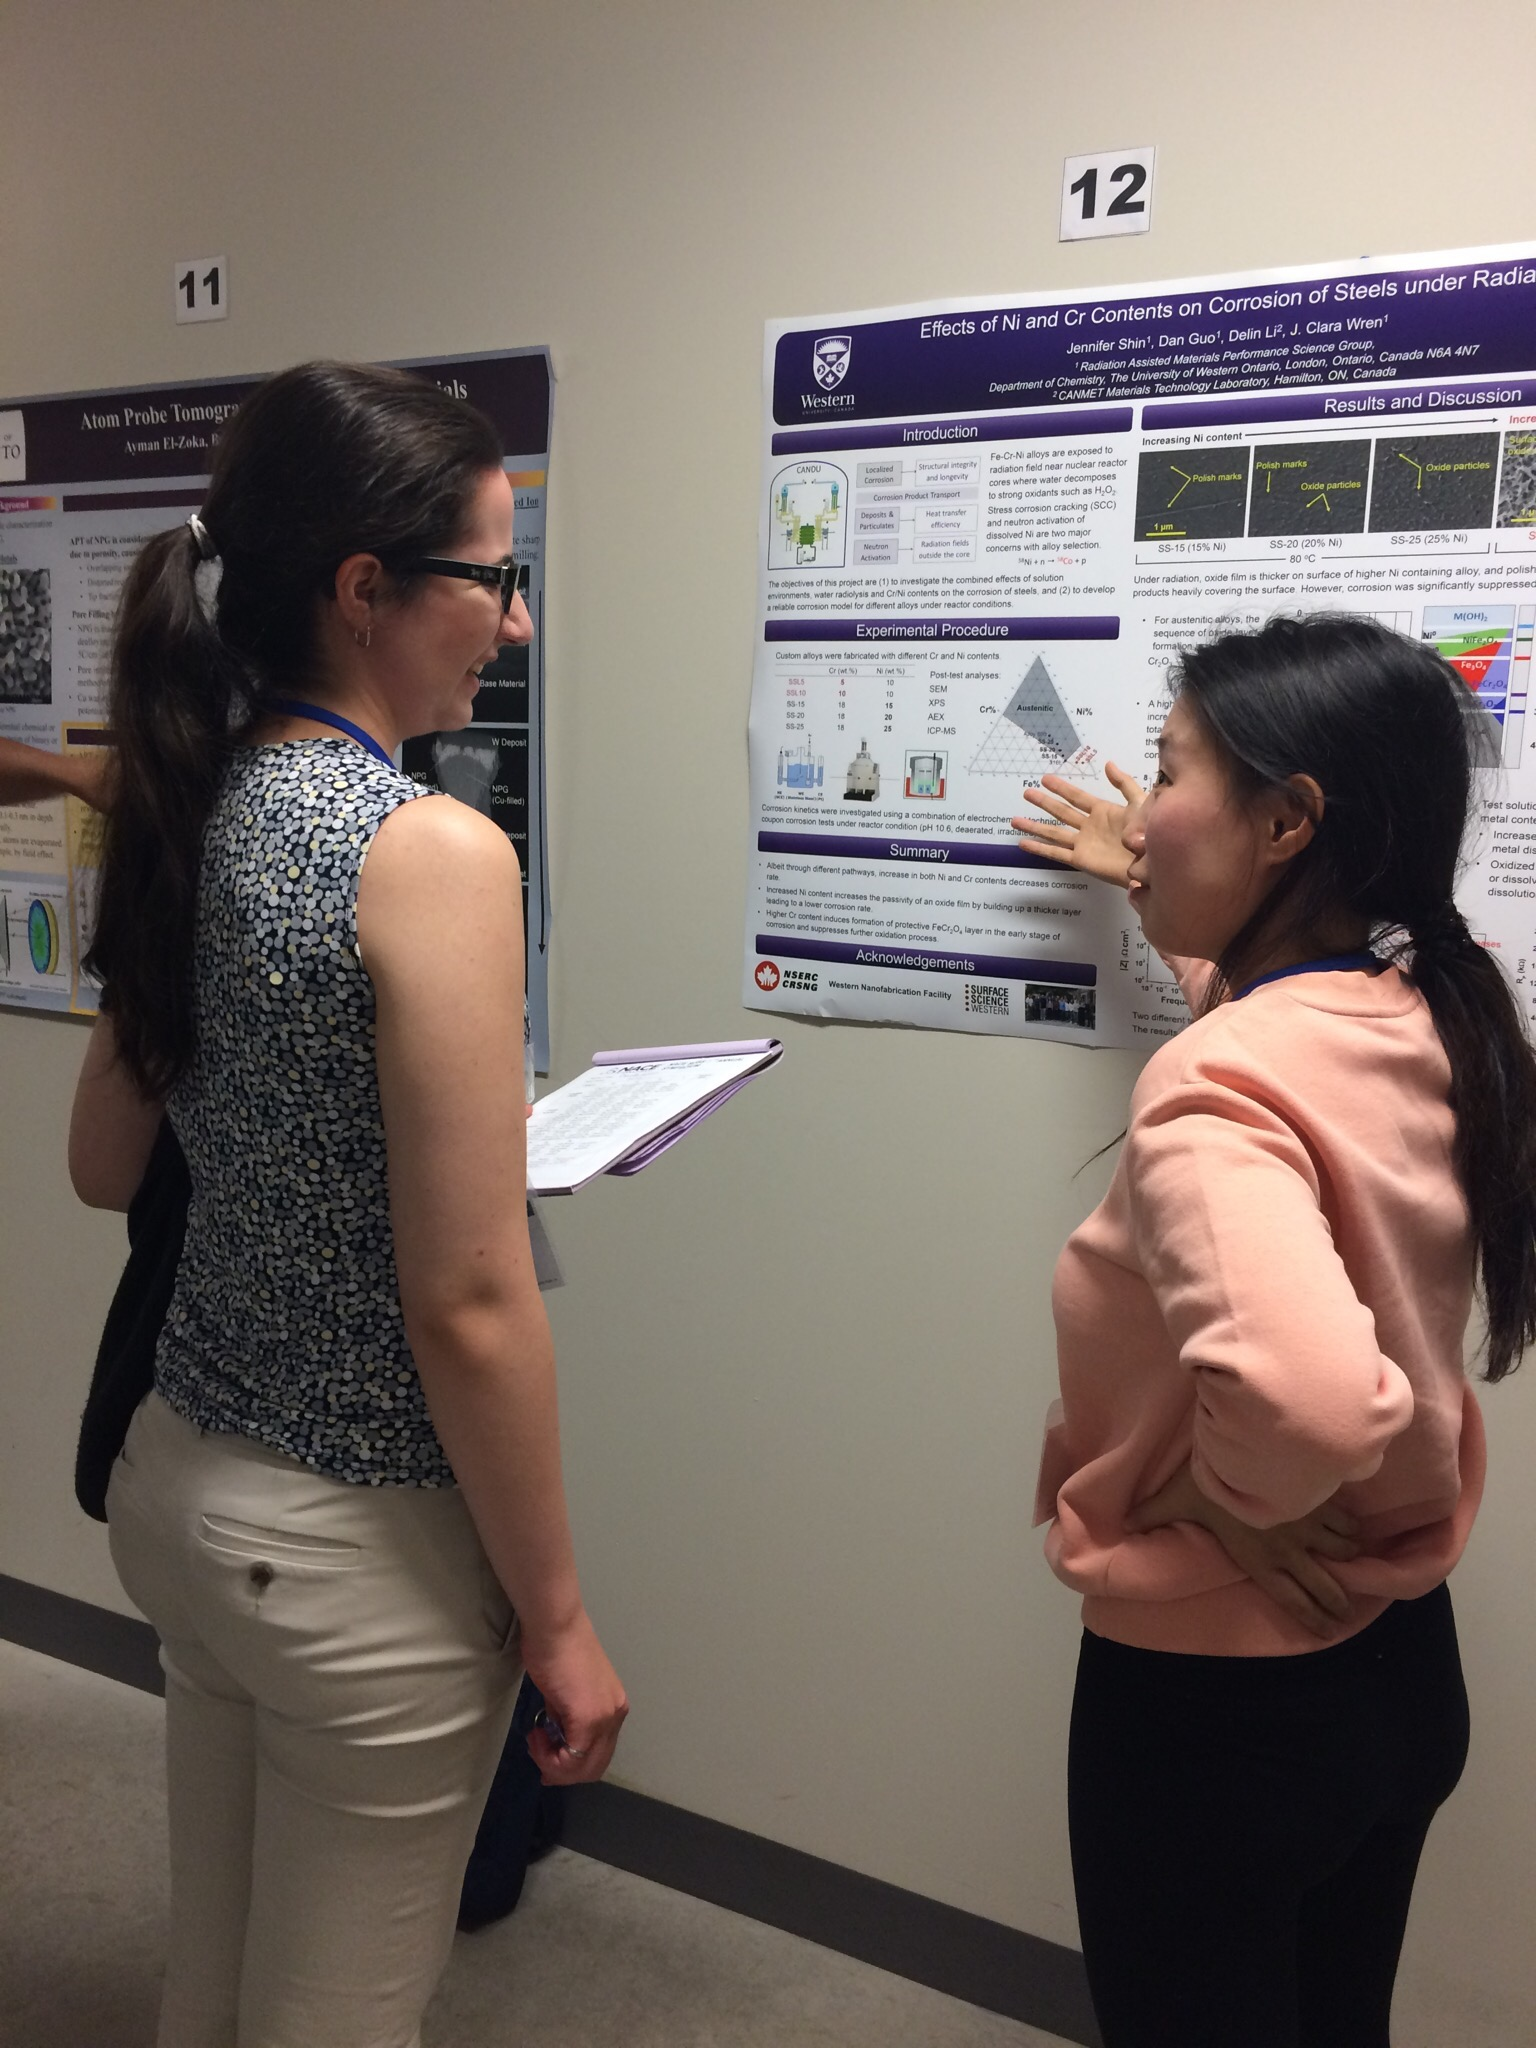 Jennifer Shin presenting her poster at the NACE student conference, 2017.